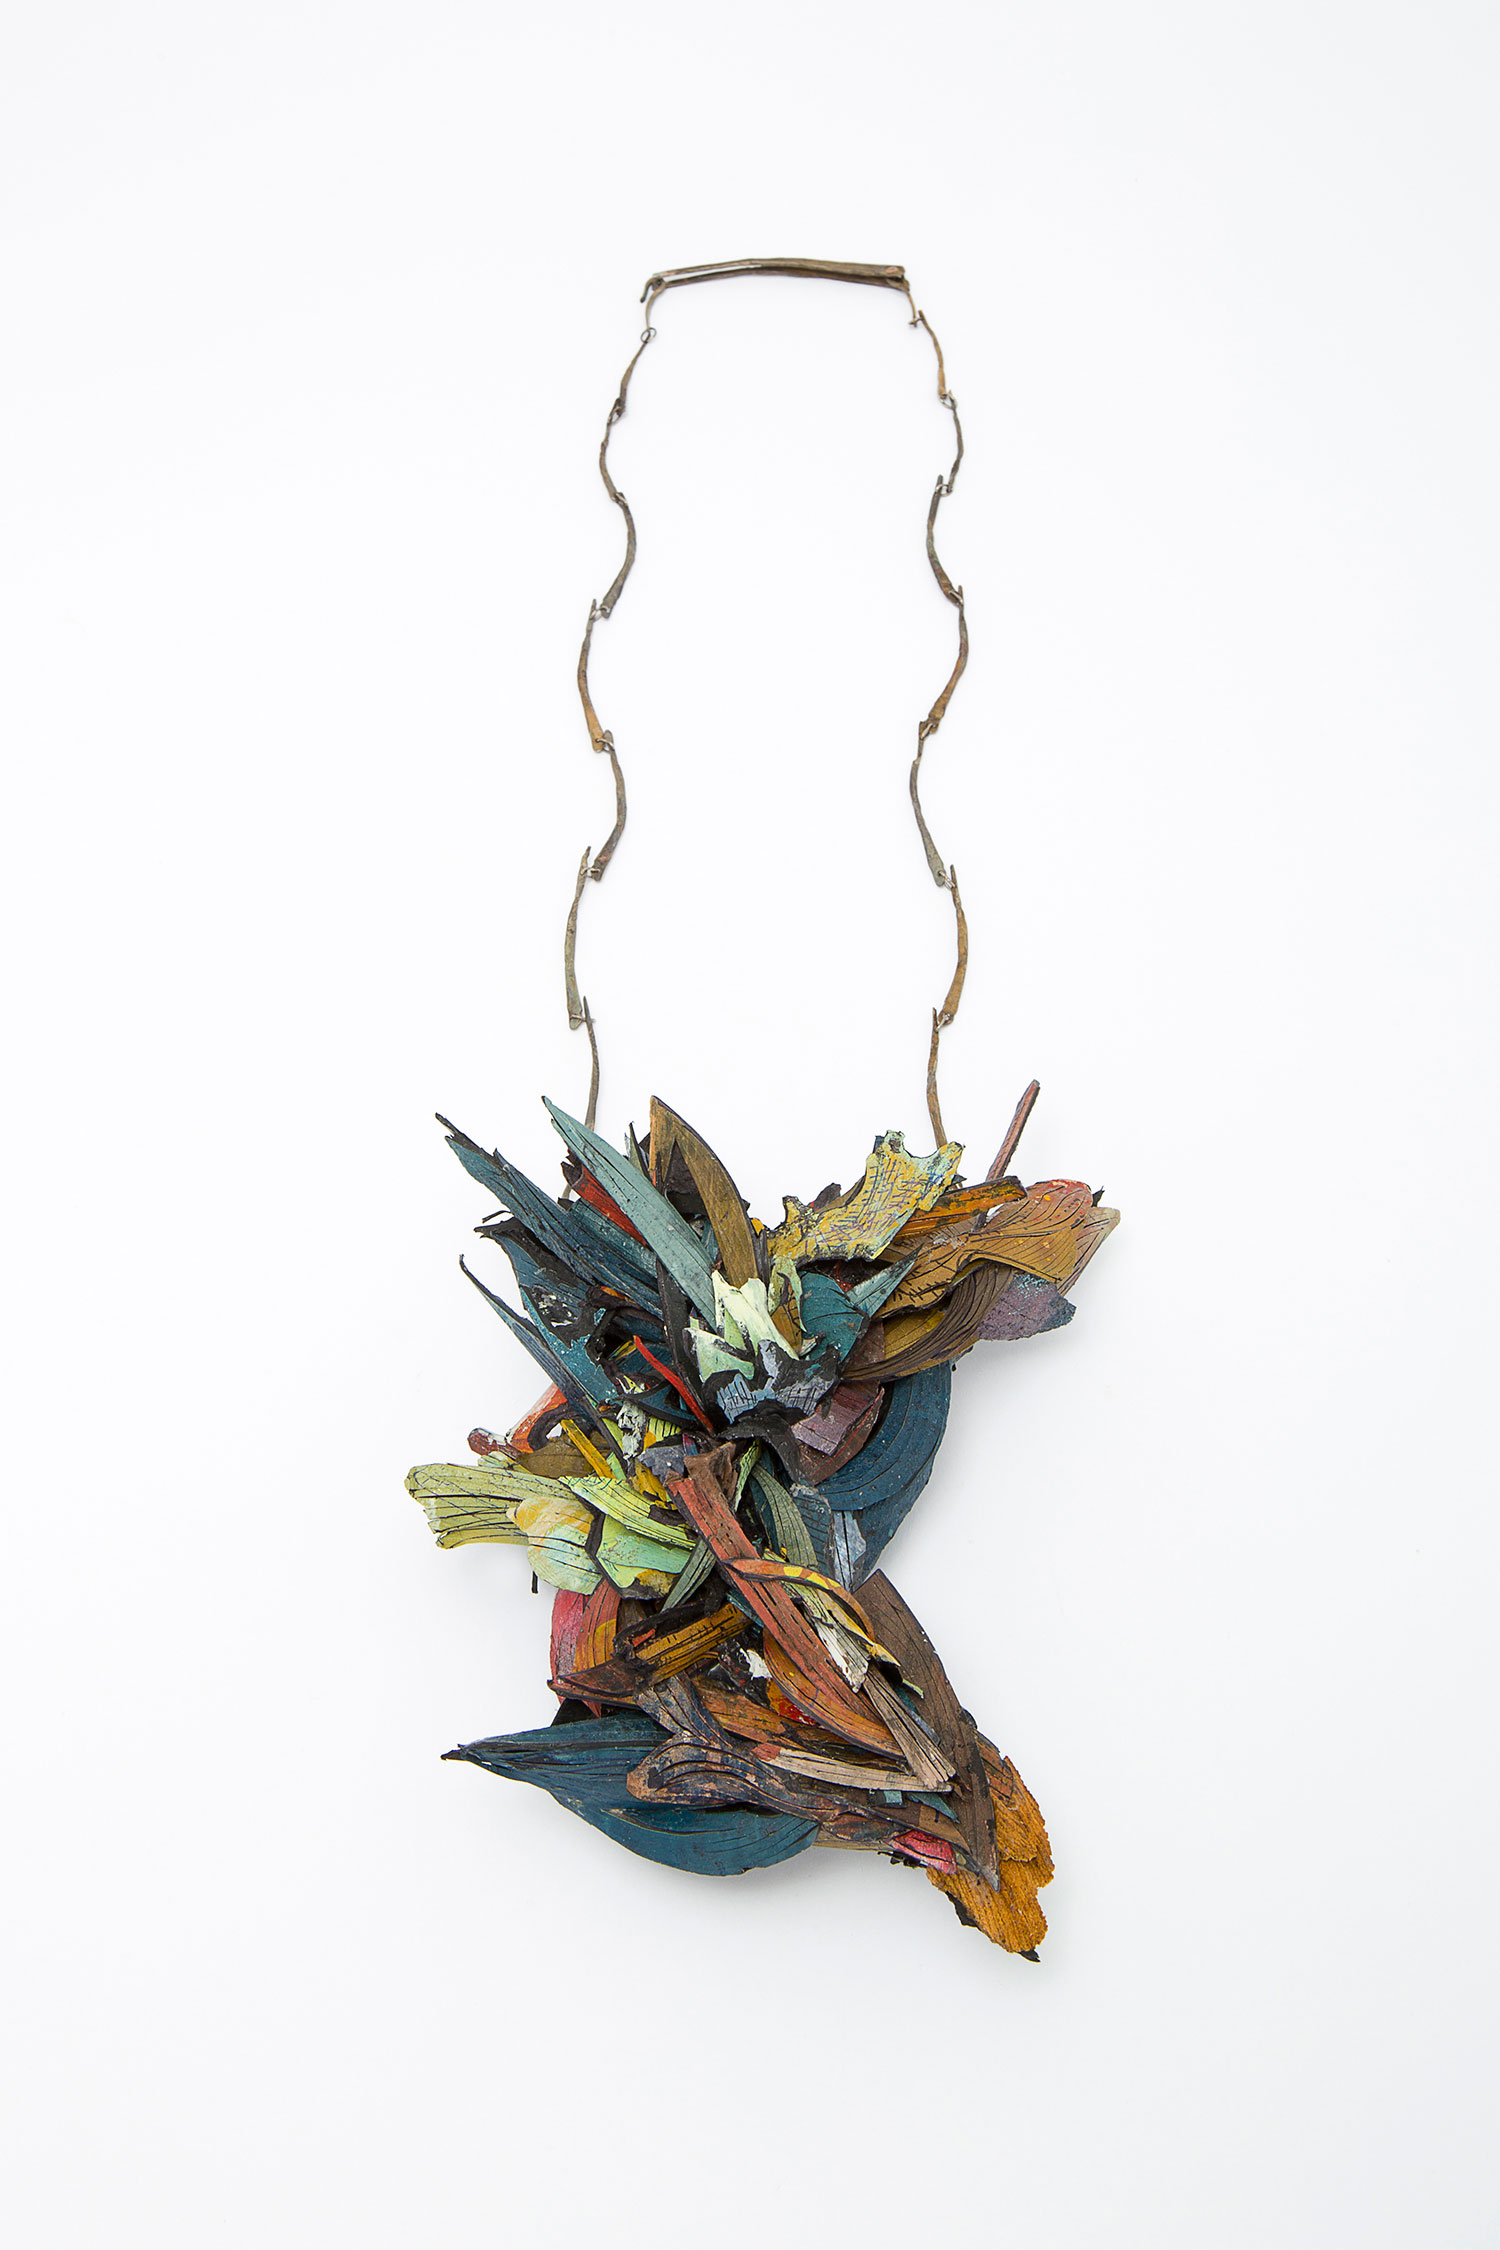 Untitled   |  Necklace    |  2015   |   Treated cellulose, paint, wood, glue, silver, Shibuishi   |   350X160X65 mm